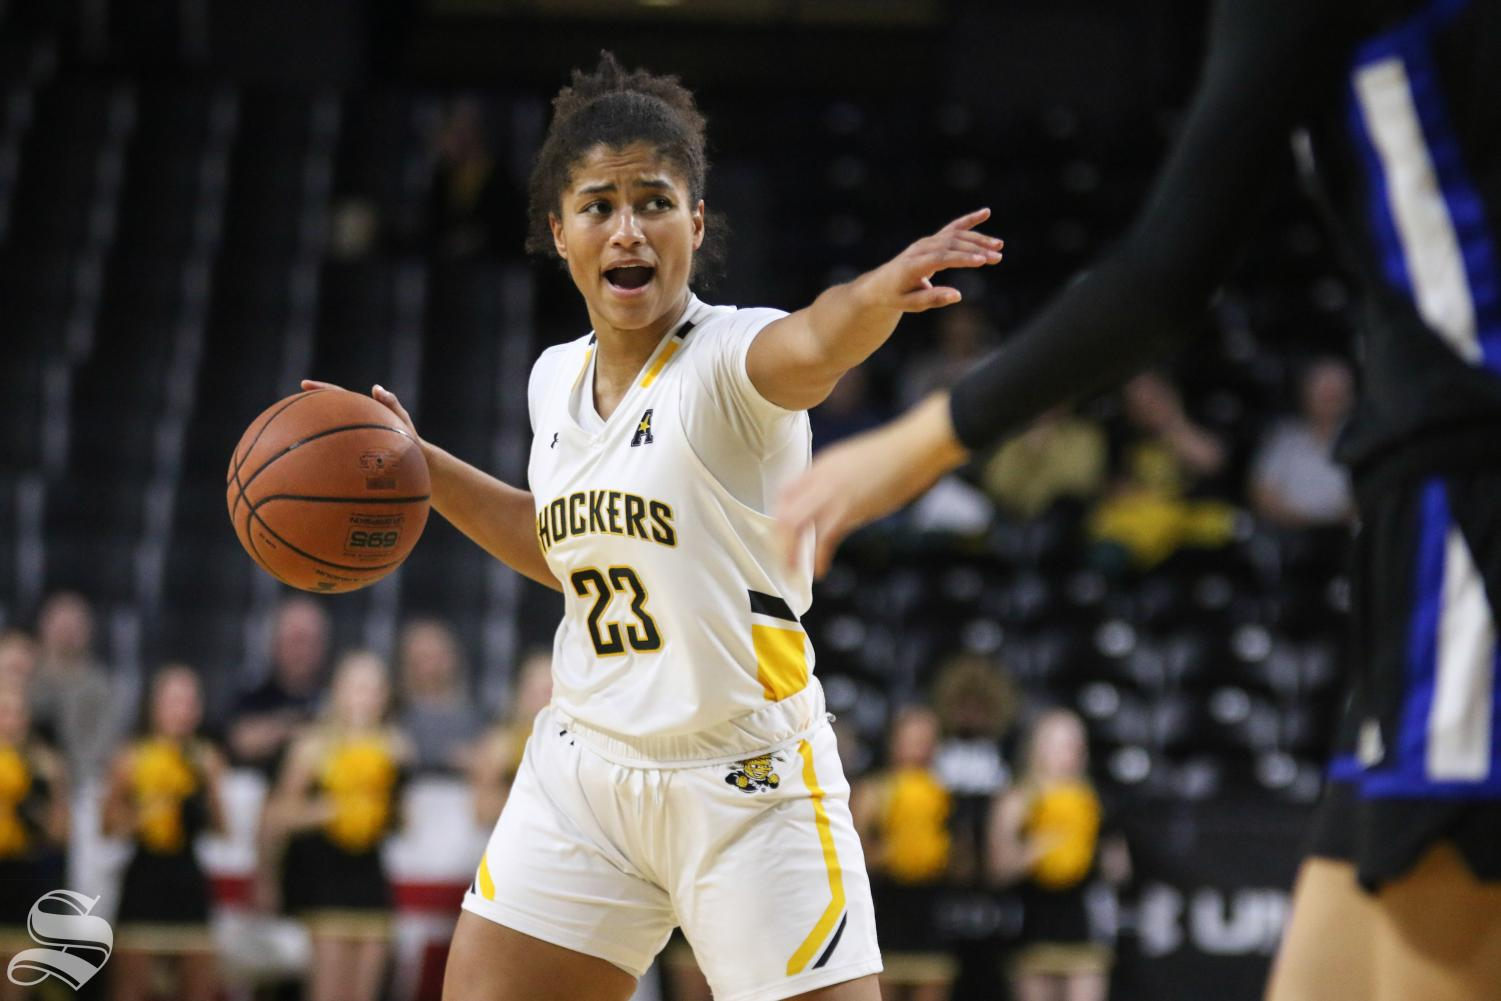 Wichita State's Seraphine Bastin calls a play during the game against Tulsa at Charles Koch Arena on Wednesday, Jan. 15, 2019.